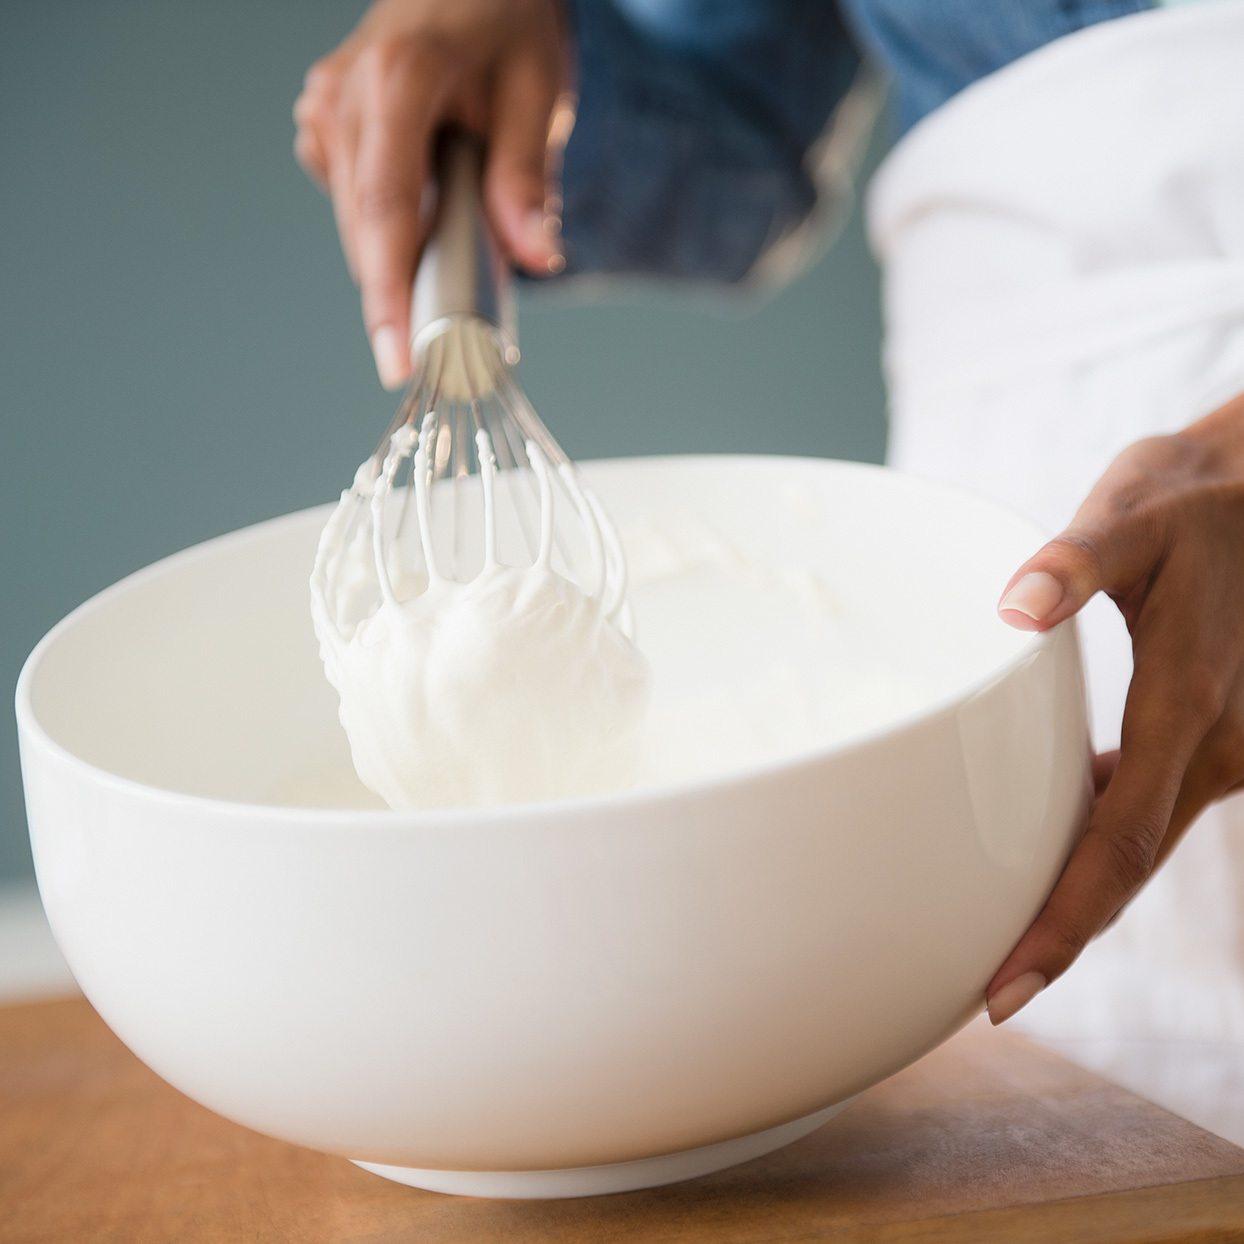 person whipping cream in a bowl with a wisk